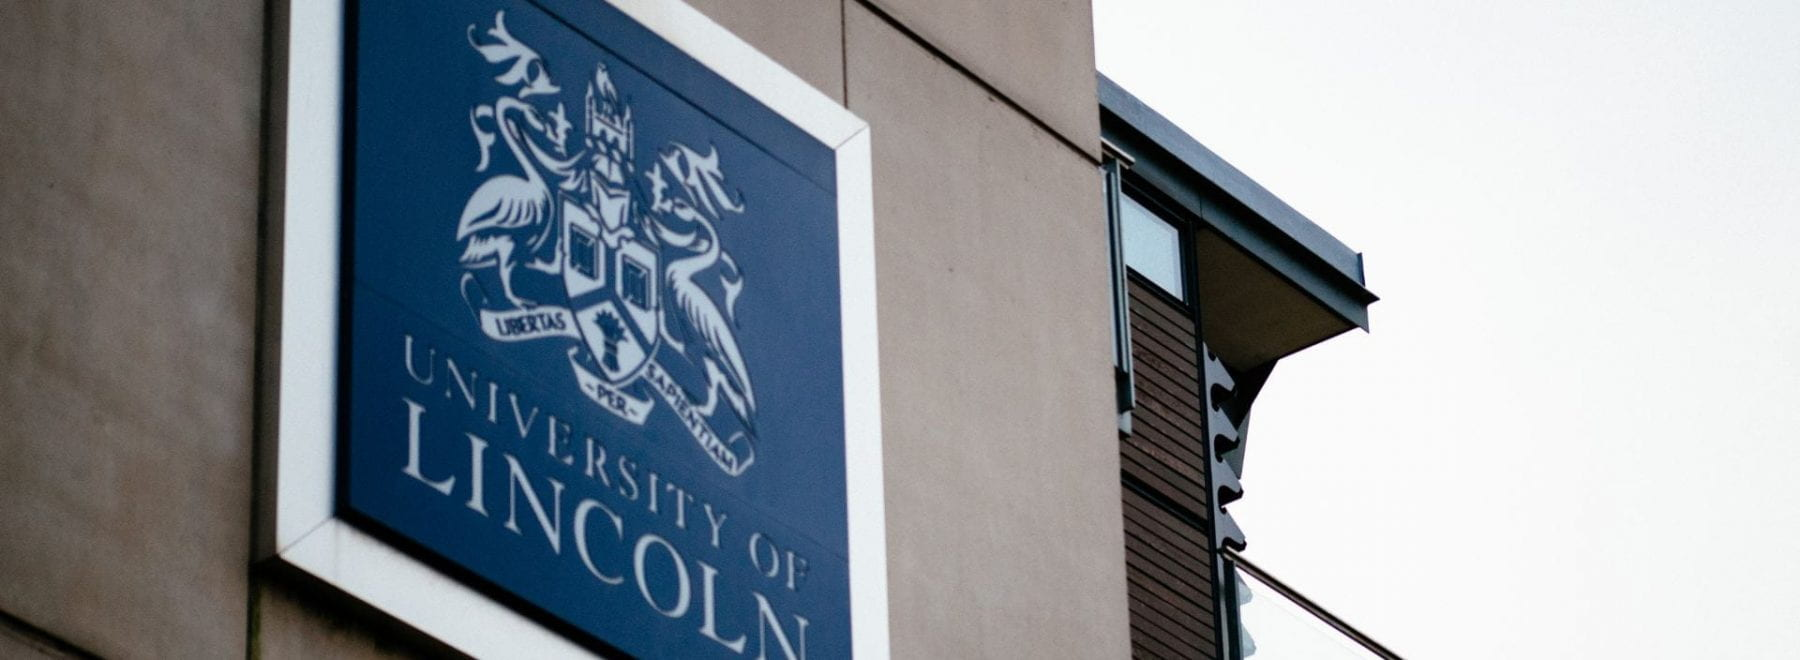 University of Lincoln Sign - Minerva Building